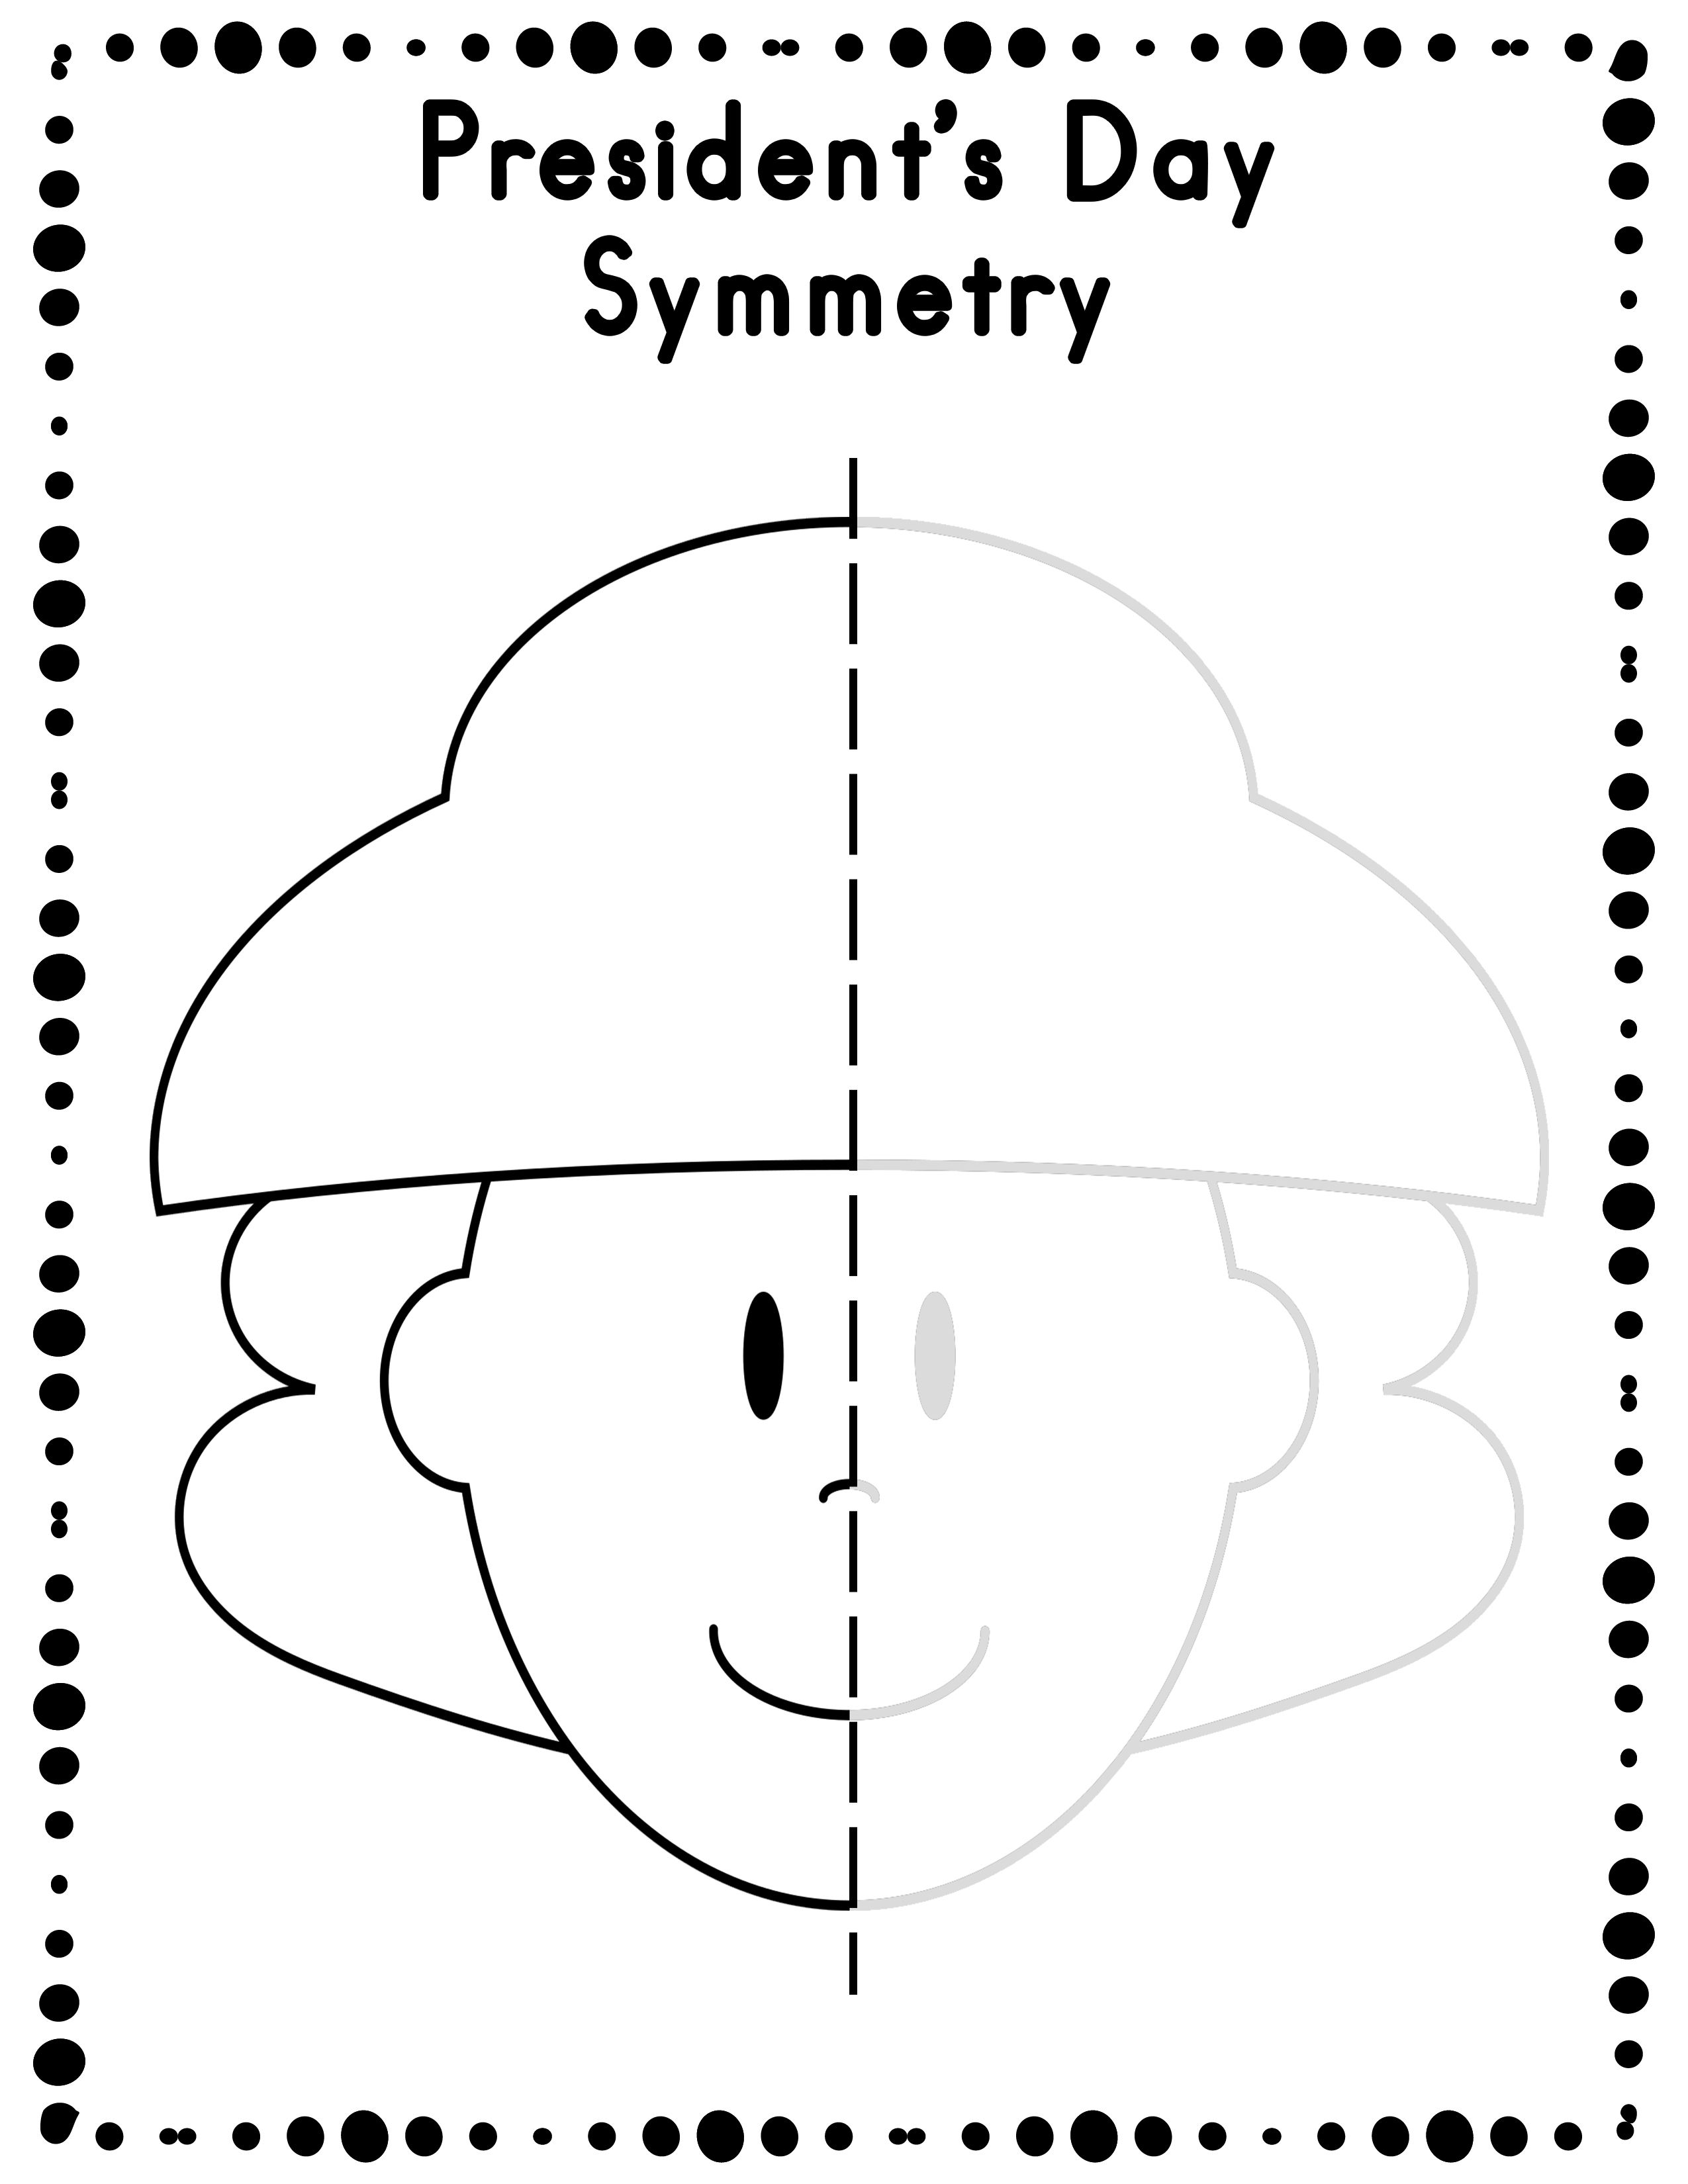 President\'s Day Symmetry Drawing Activity for Art and Math